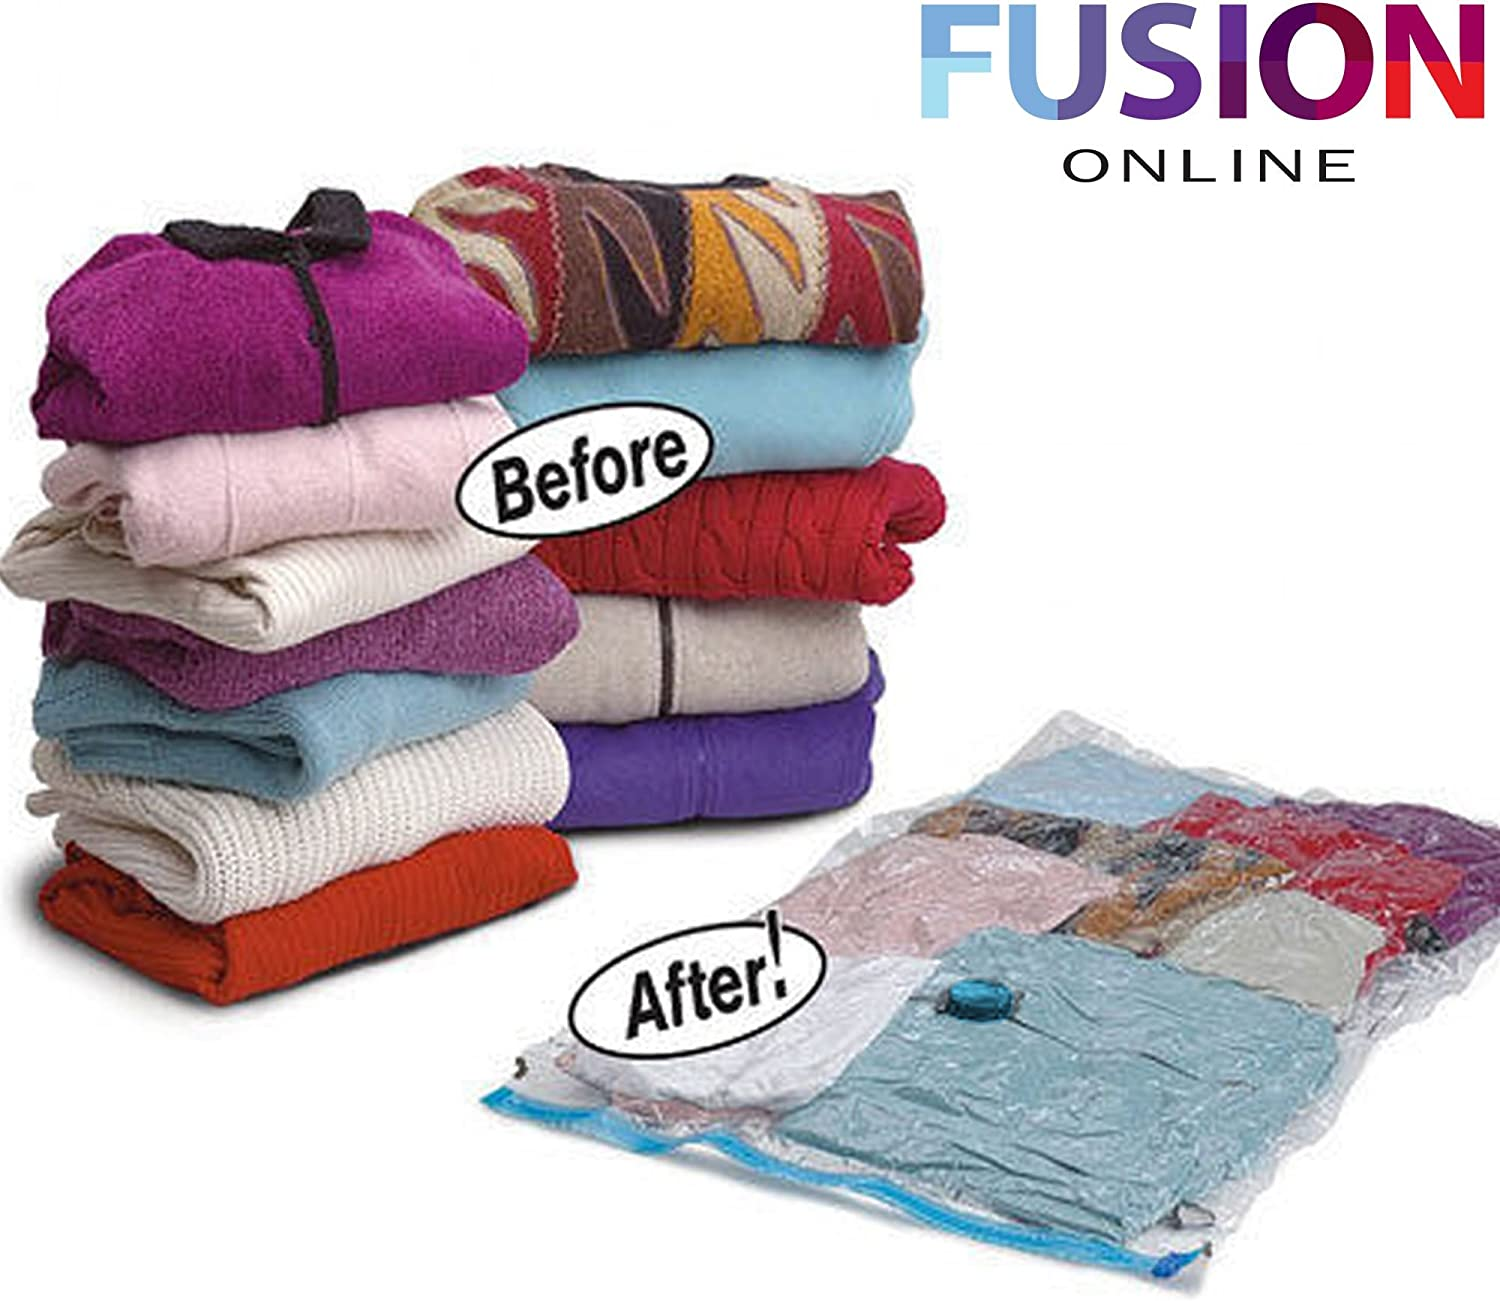 Blankets Curtains XX Pillows Clothes EVELYN LIVING 90 x 130 Pack Of 6 Vacuum Storage Bags Sealed Compressed Organiser Space Saving Ideal For Travel Bedding LARGE Size Duvets